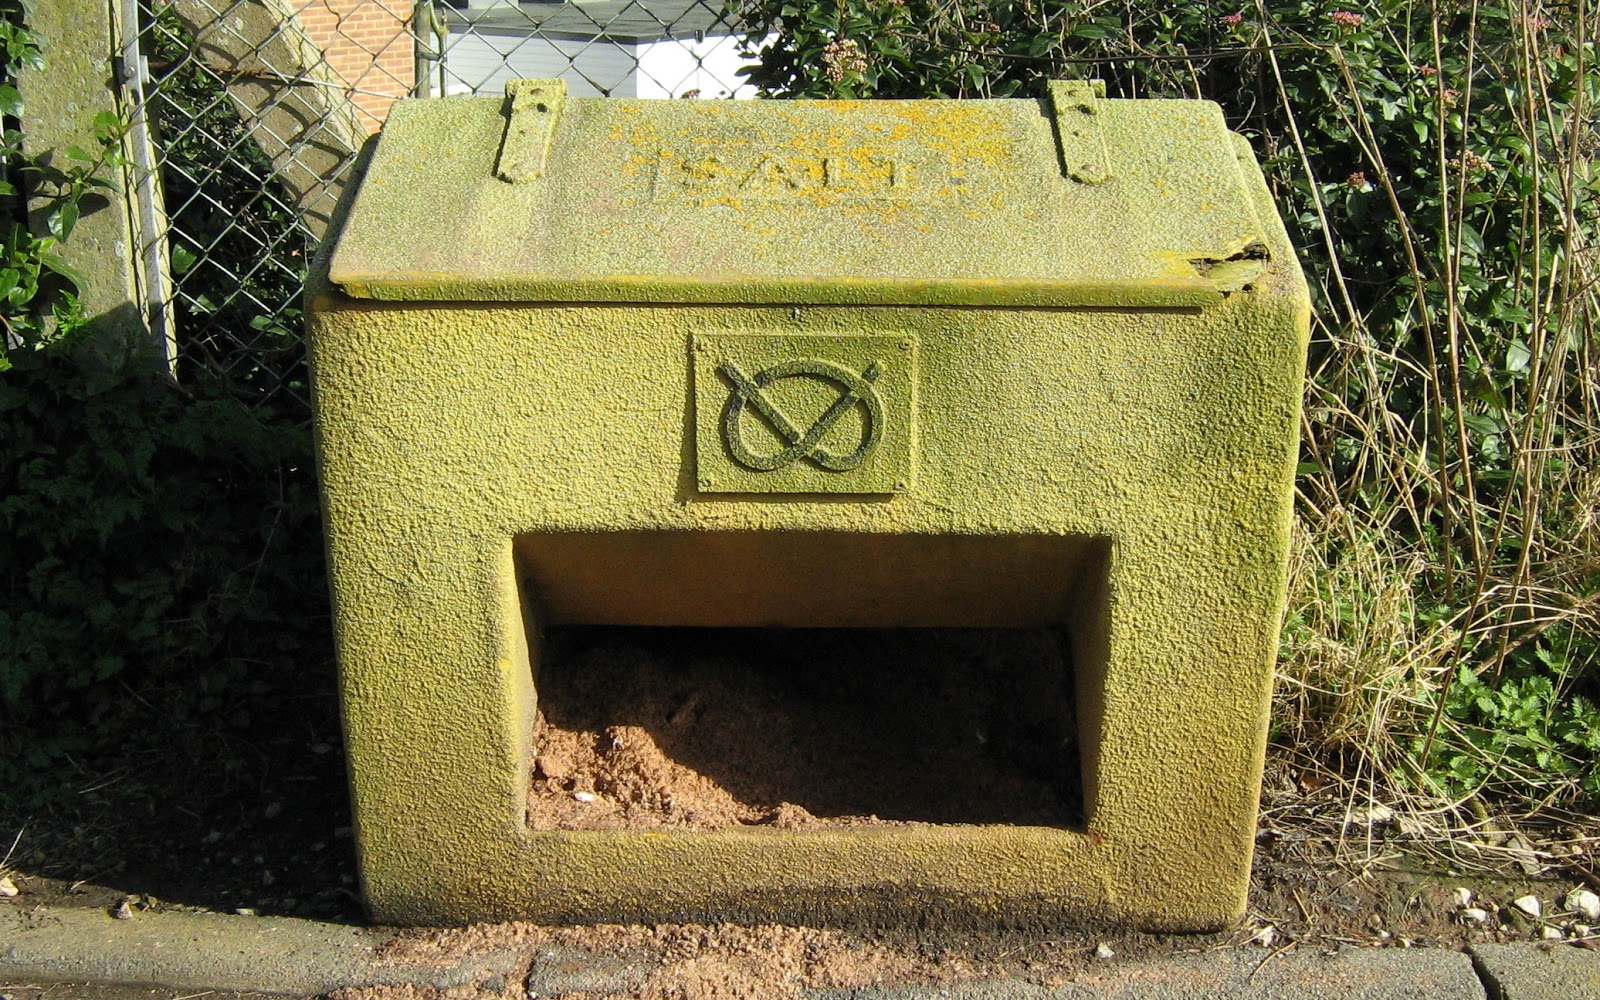 Grit-bin at Draycott-in-the-Clay, with Stafford Knot